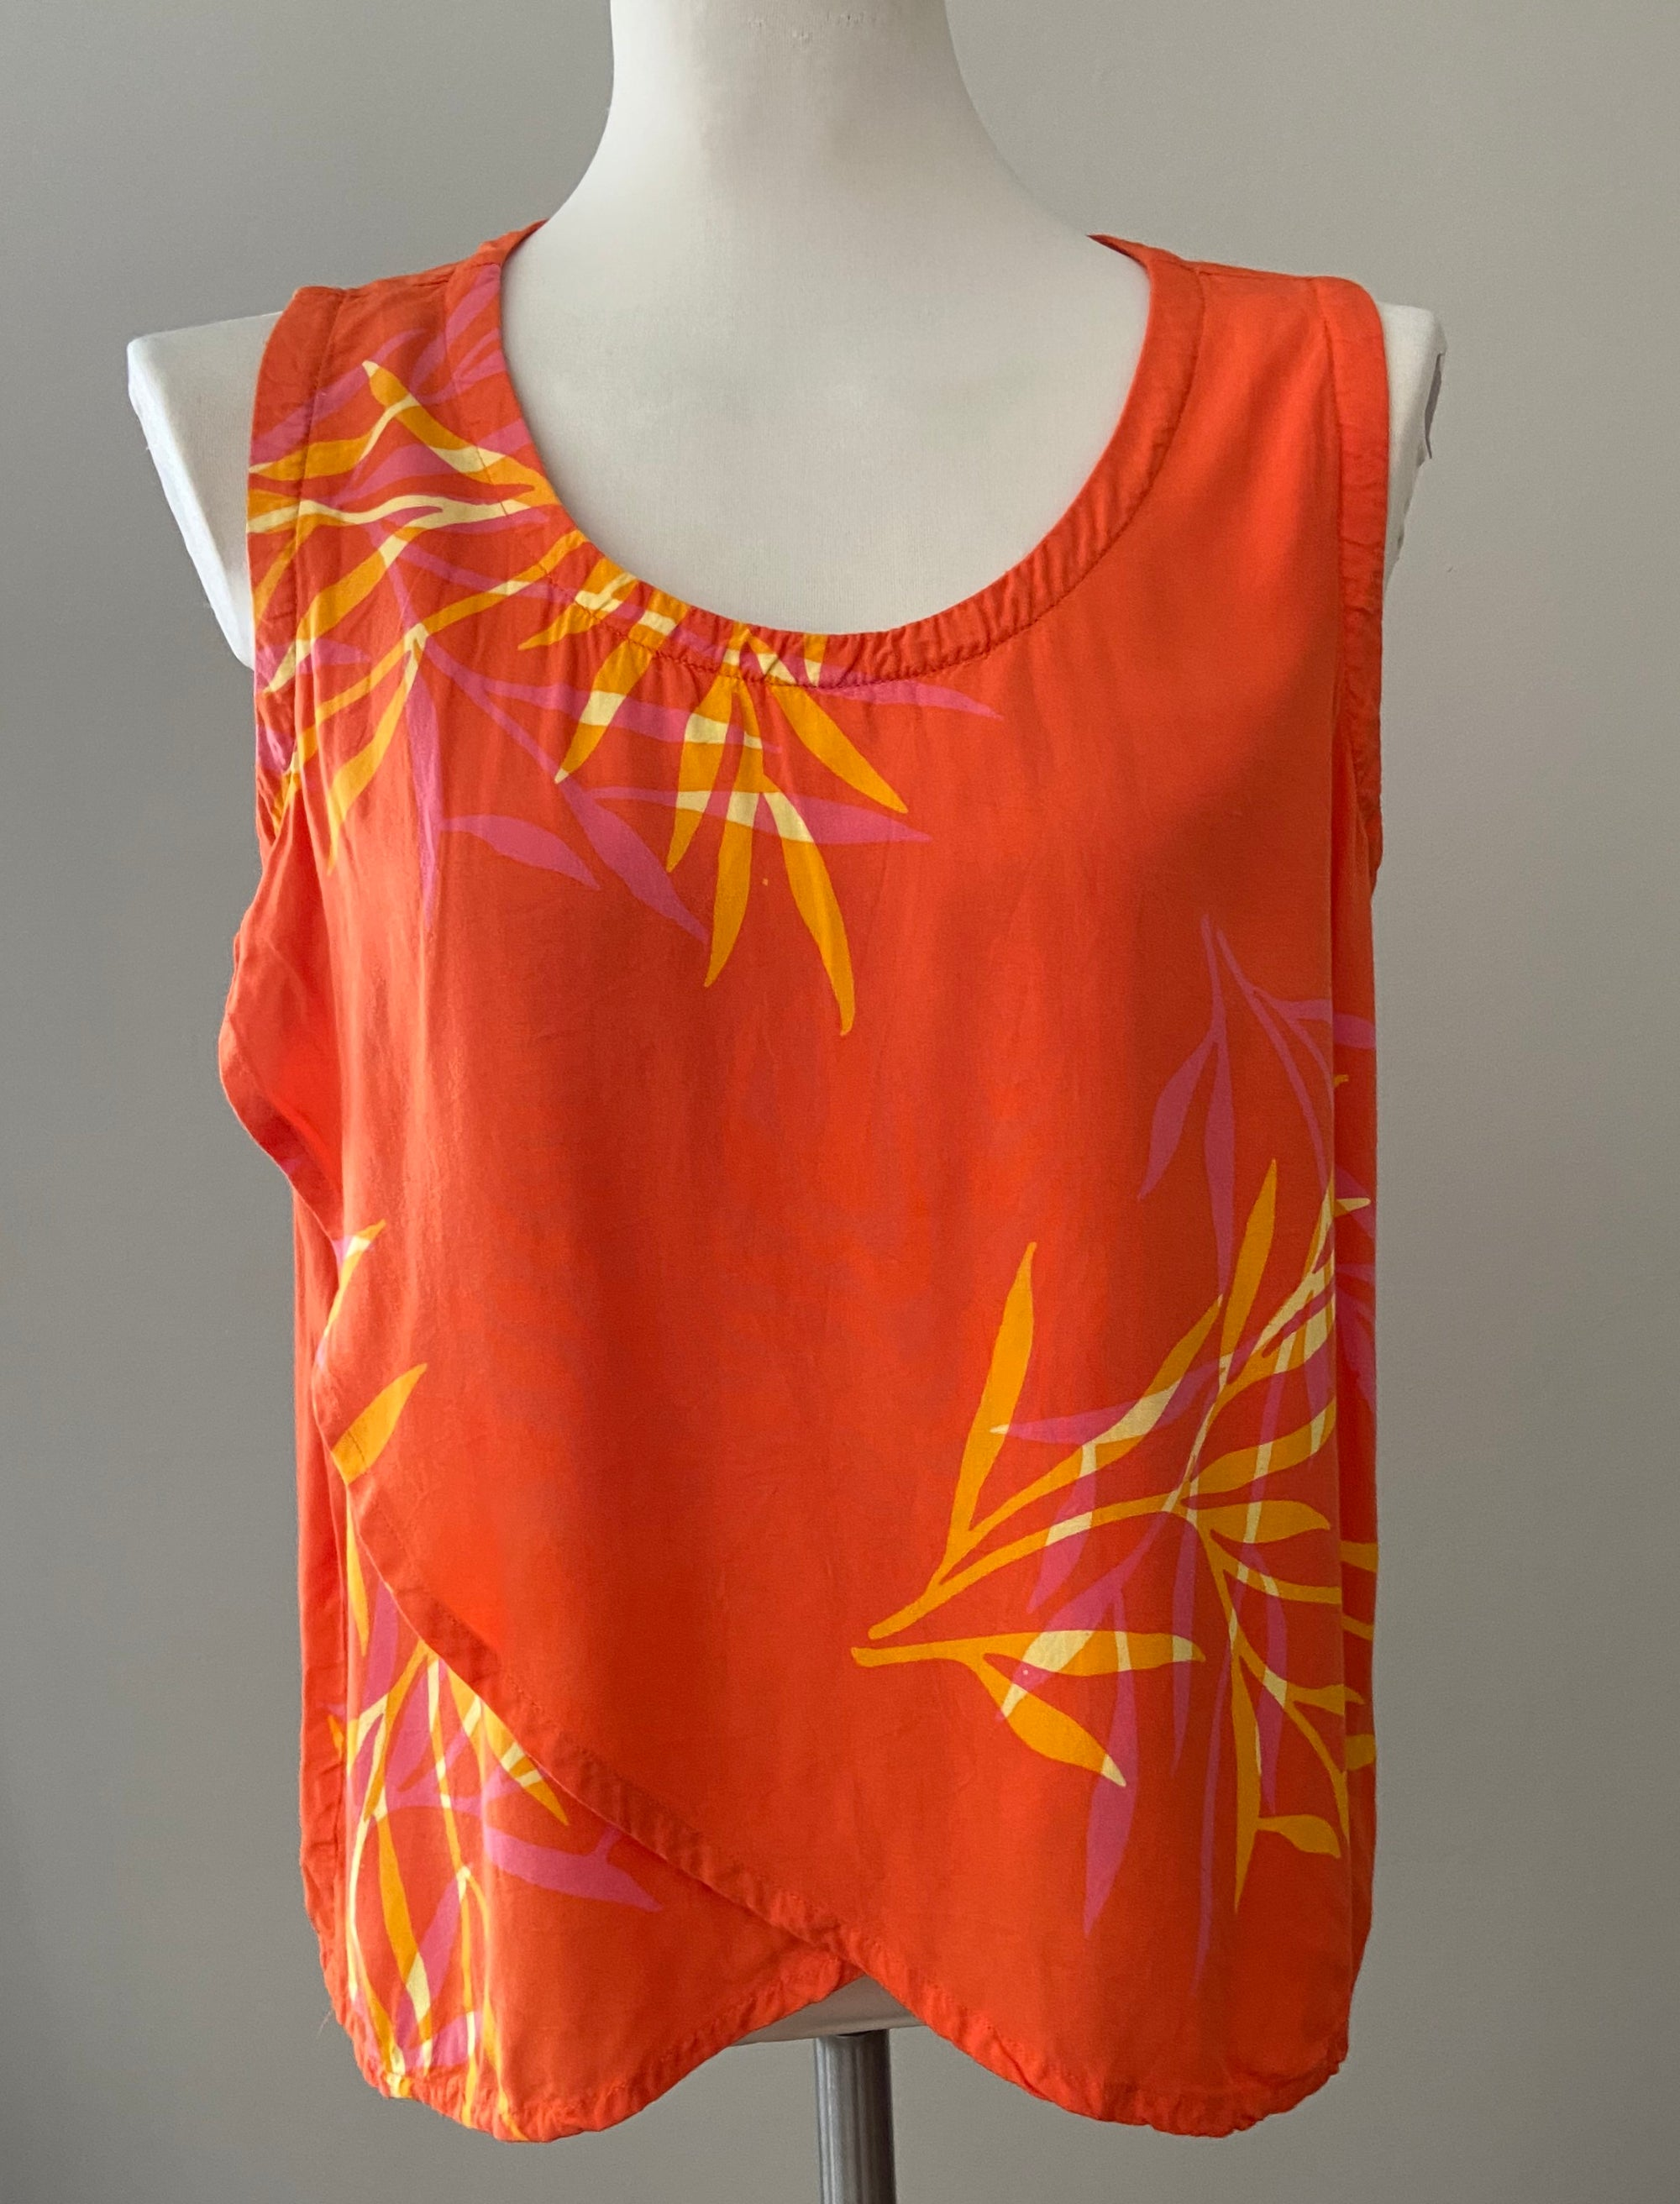 DEL SOLE bright spring orange sleeveless top